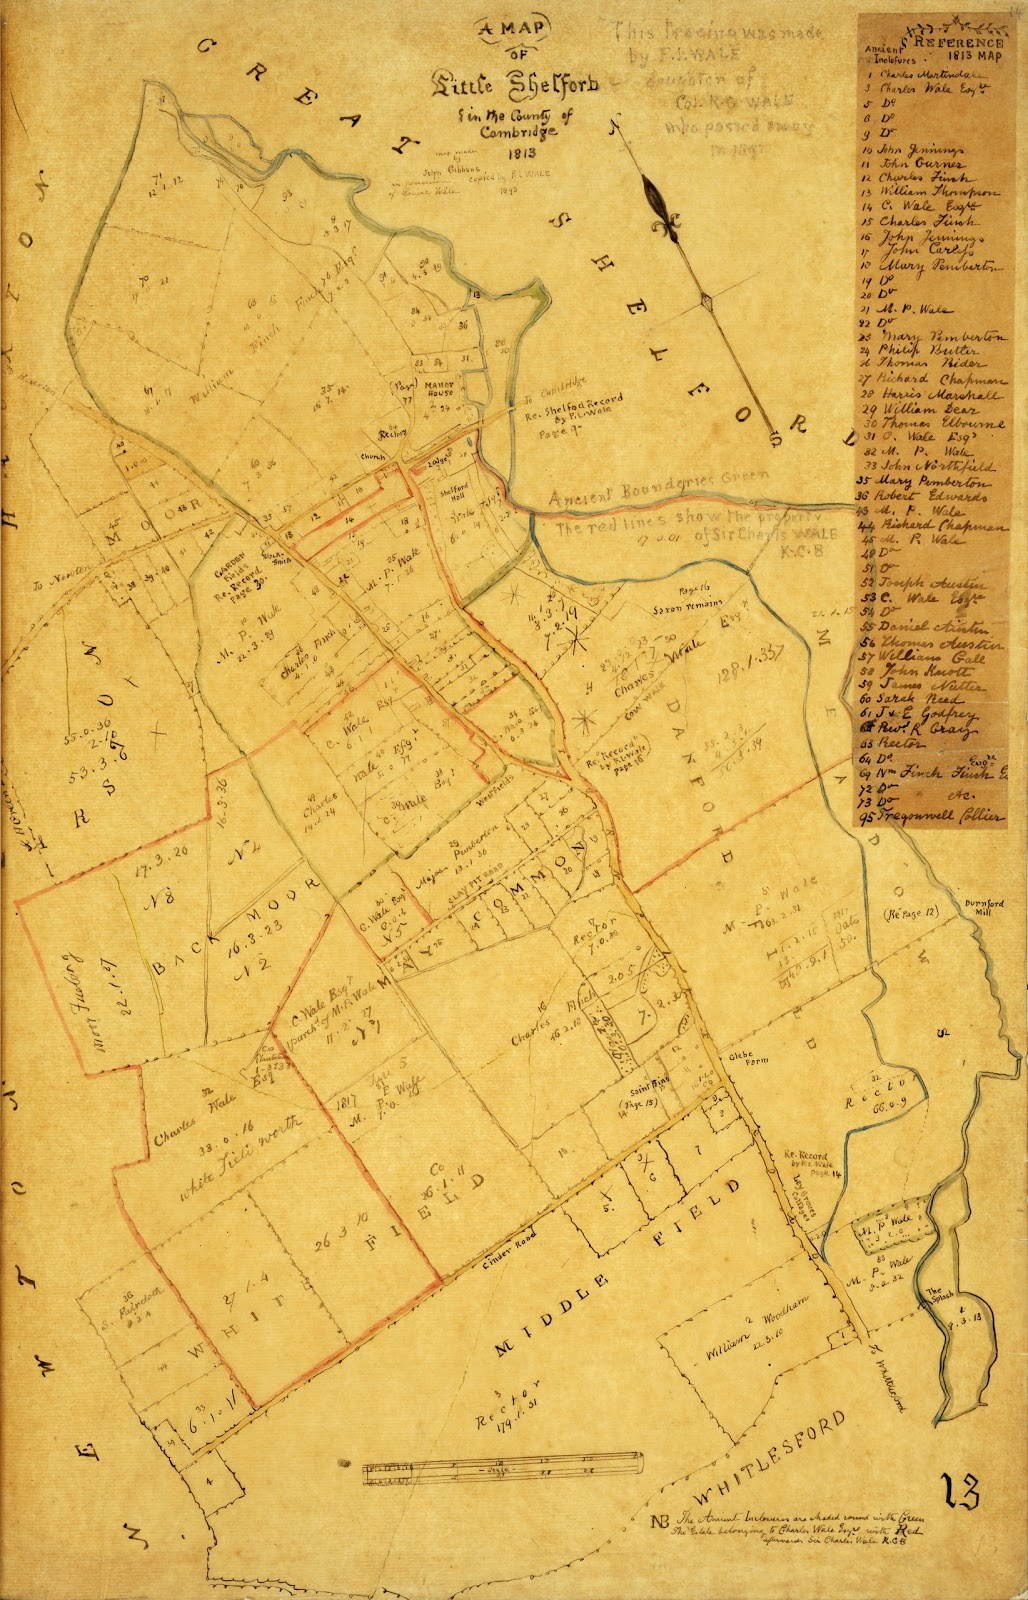 A Record of Shelford Parva by Fanny Wale P13 fo. 14, page 13: A map of Little Shelford with table of old inclosures traced from the inclosure map of 1813. [fo.13, but lacking the table of old inclosures]